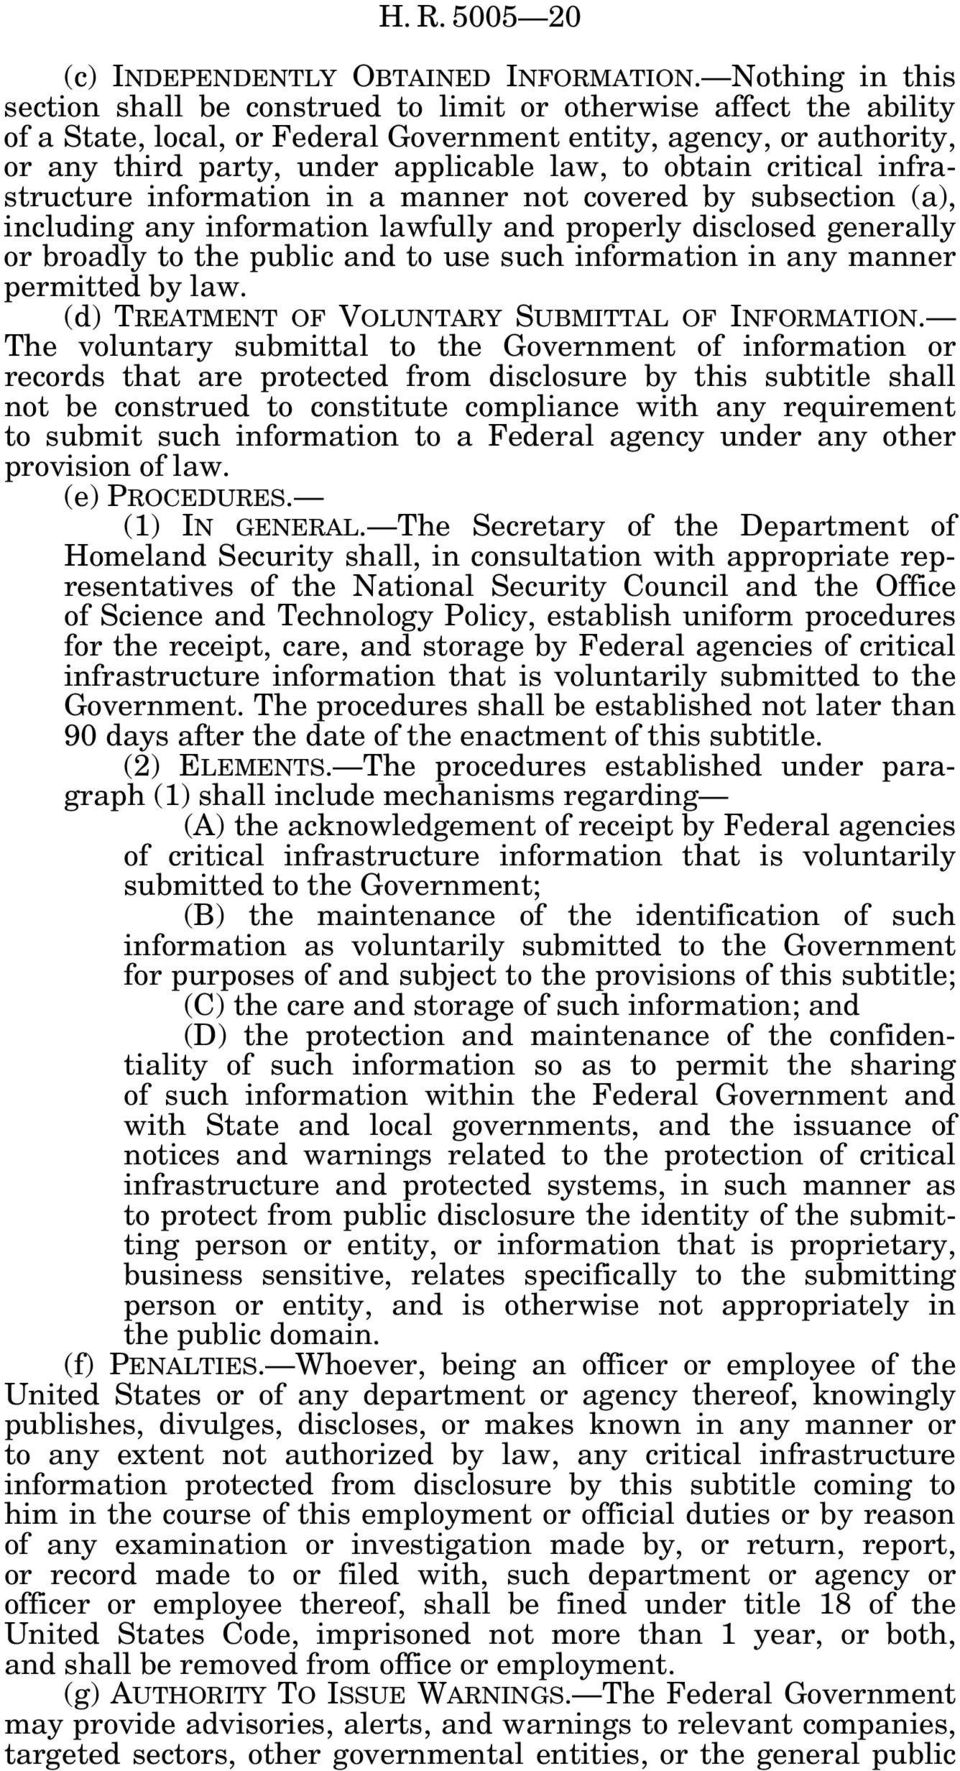 obtain critical infrastructure information in a manner not covered by subsection (a), including any information lawfully and properly disclosed generally or broadly to the public and to use such